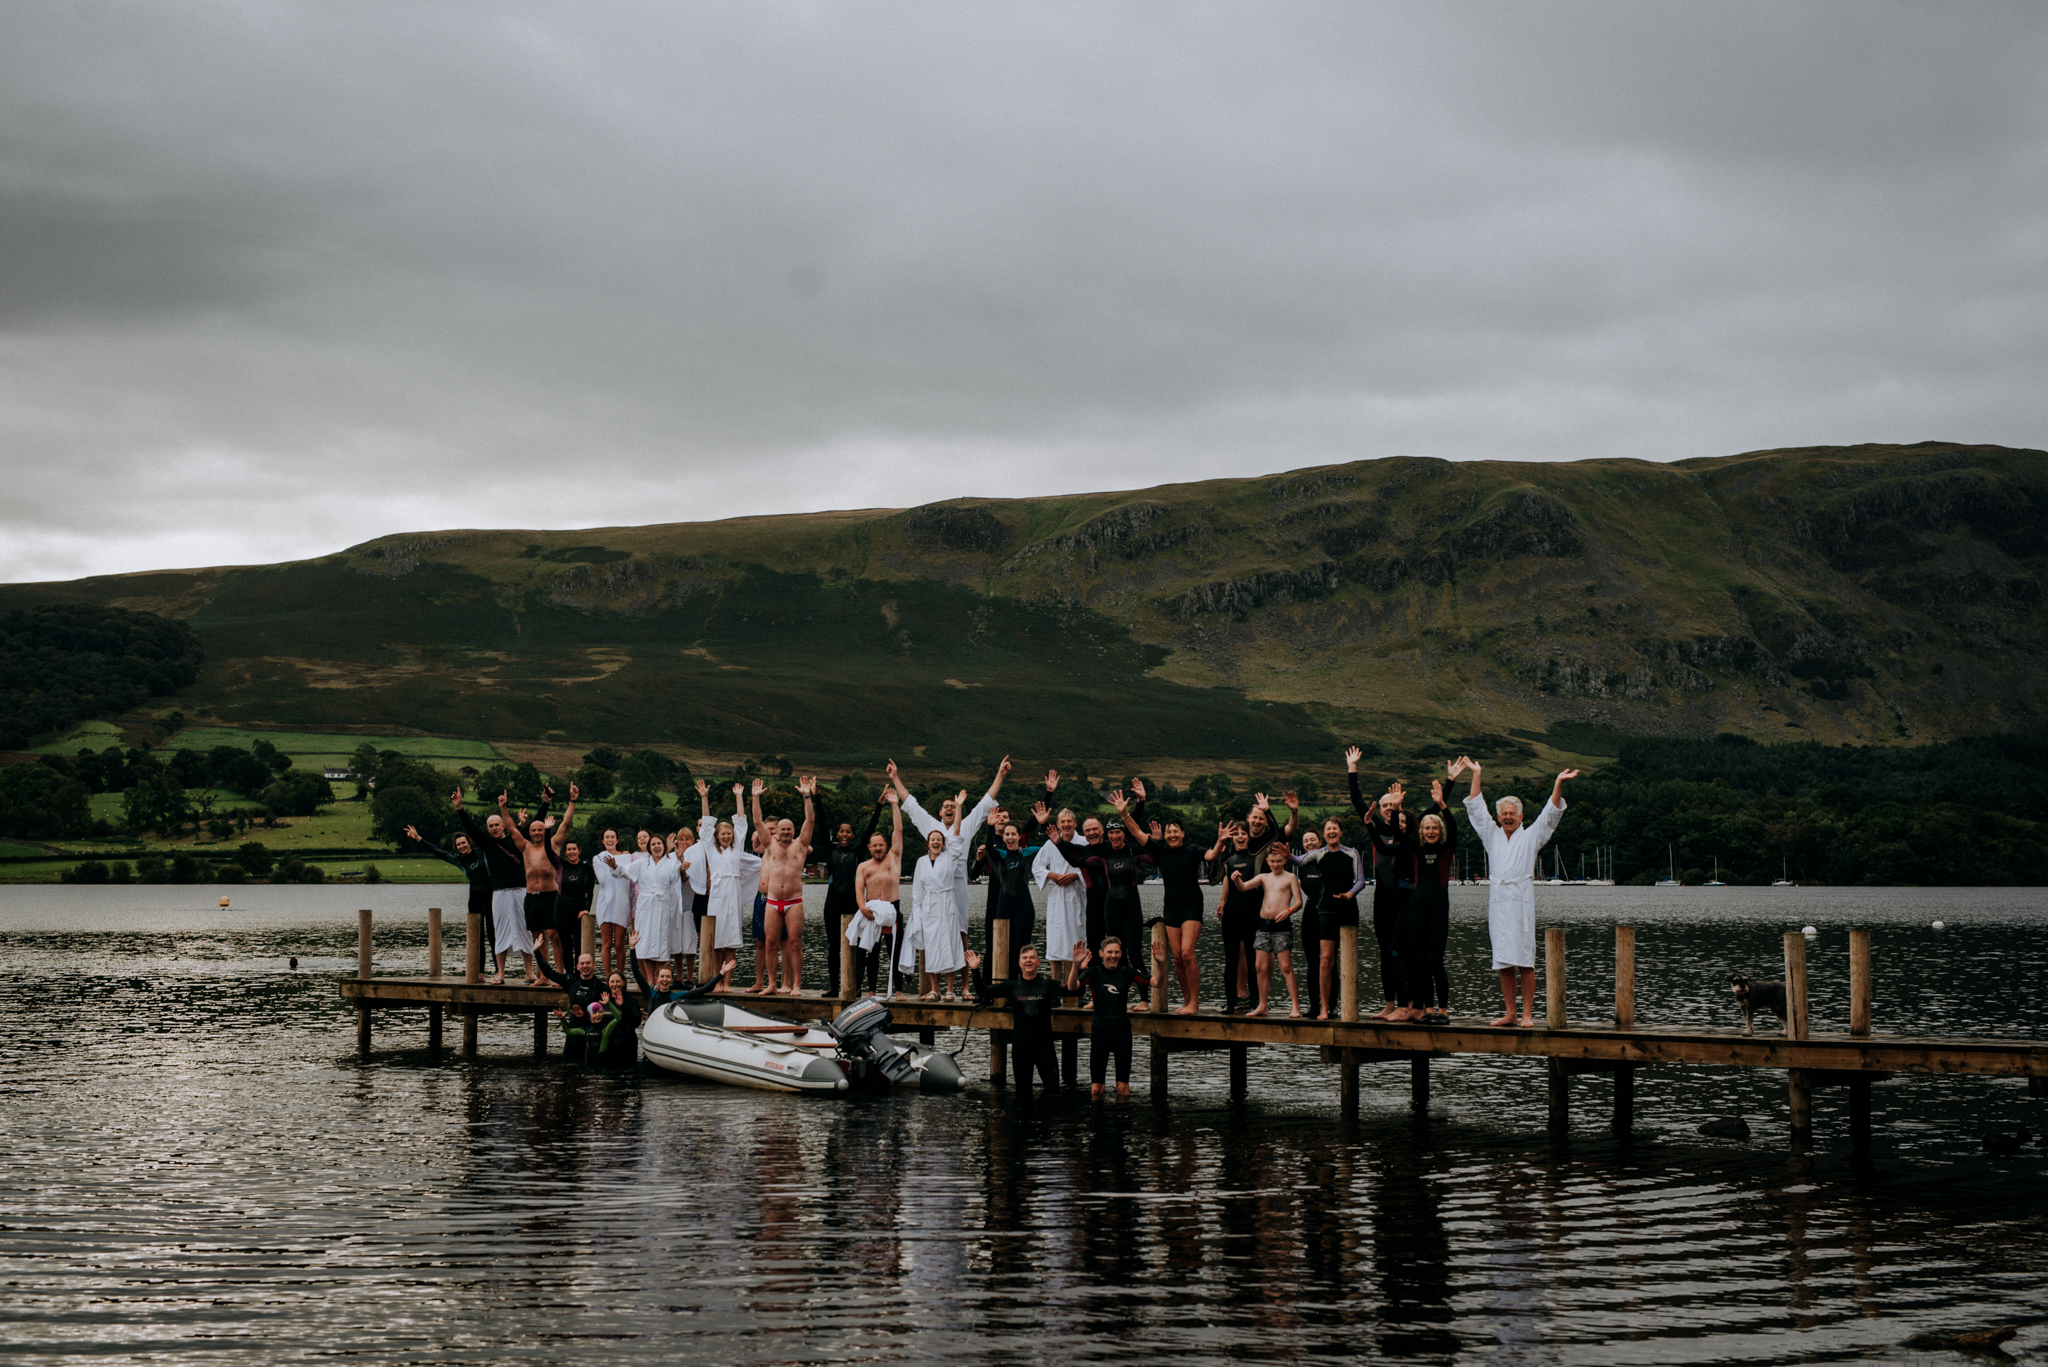 Wedding at Another Place in Lake Ullswater